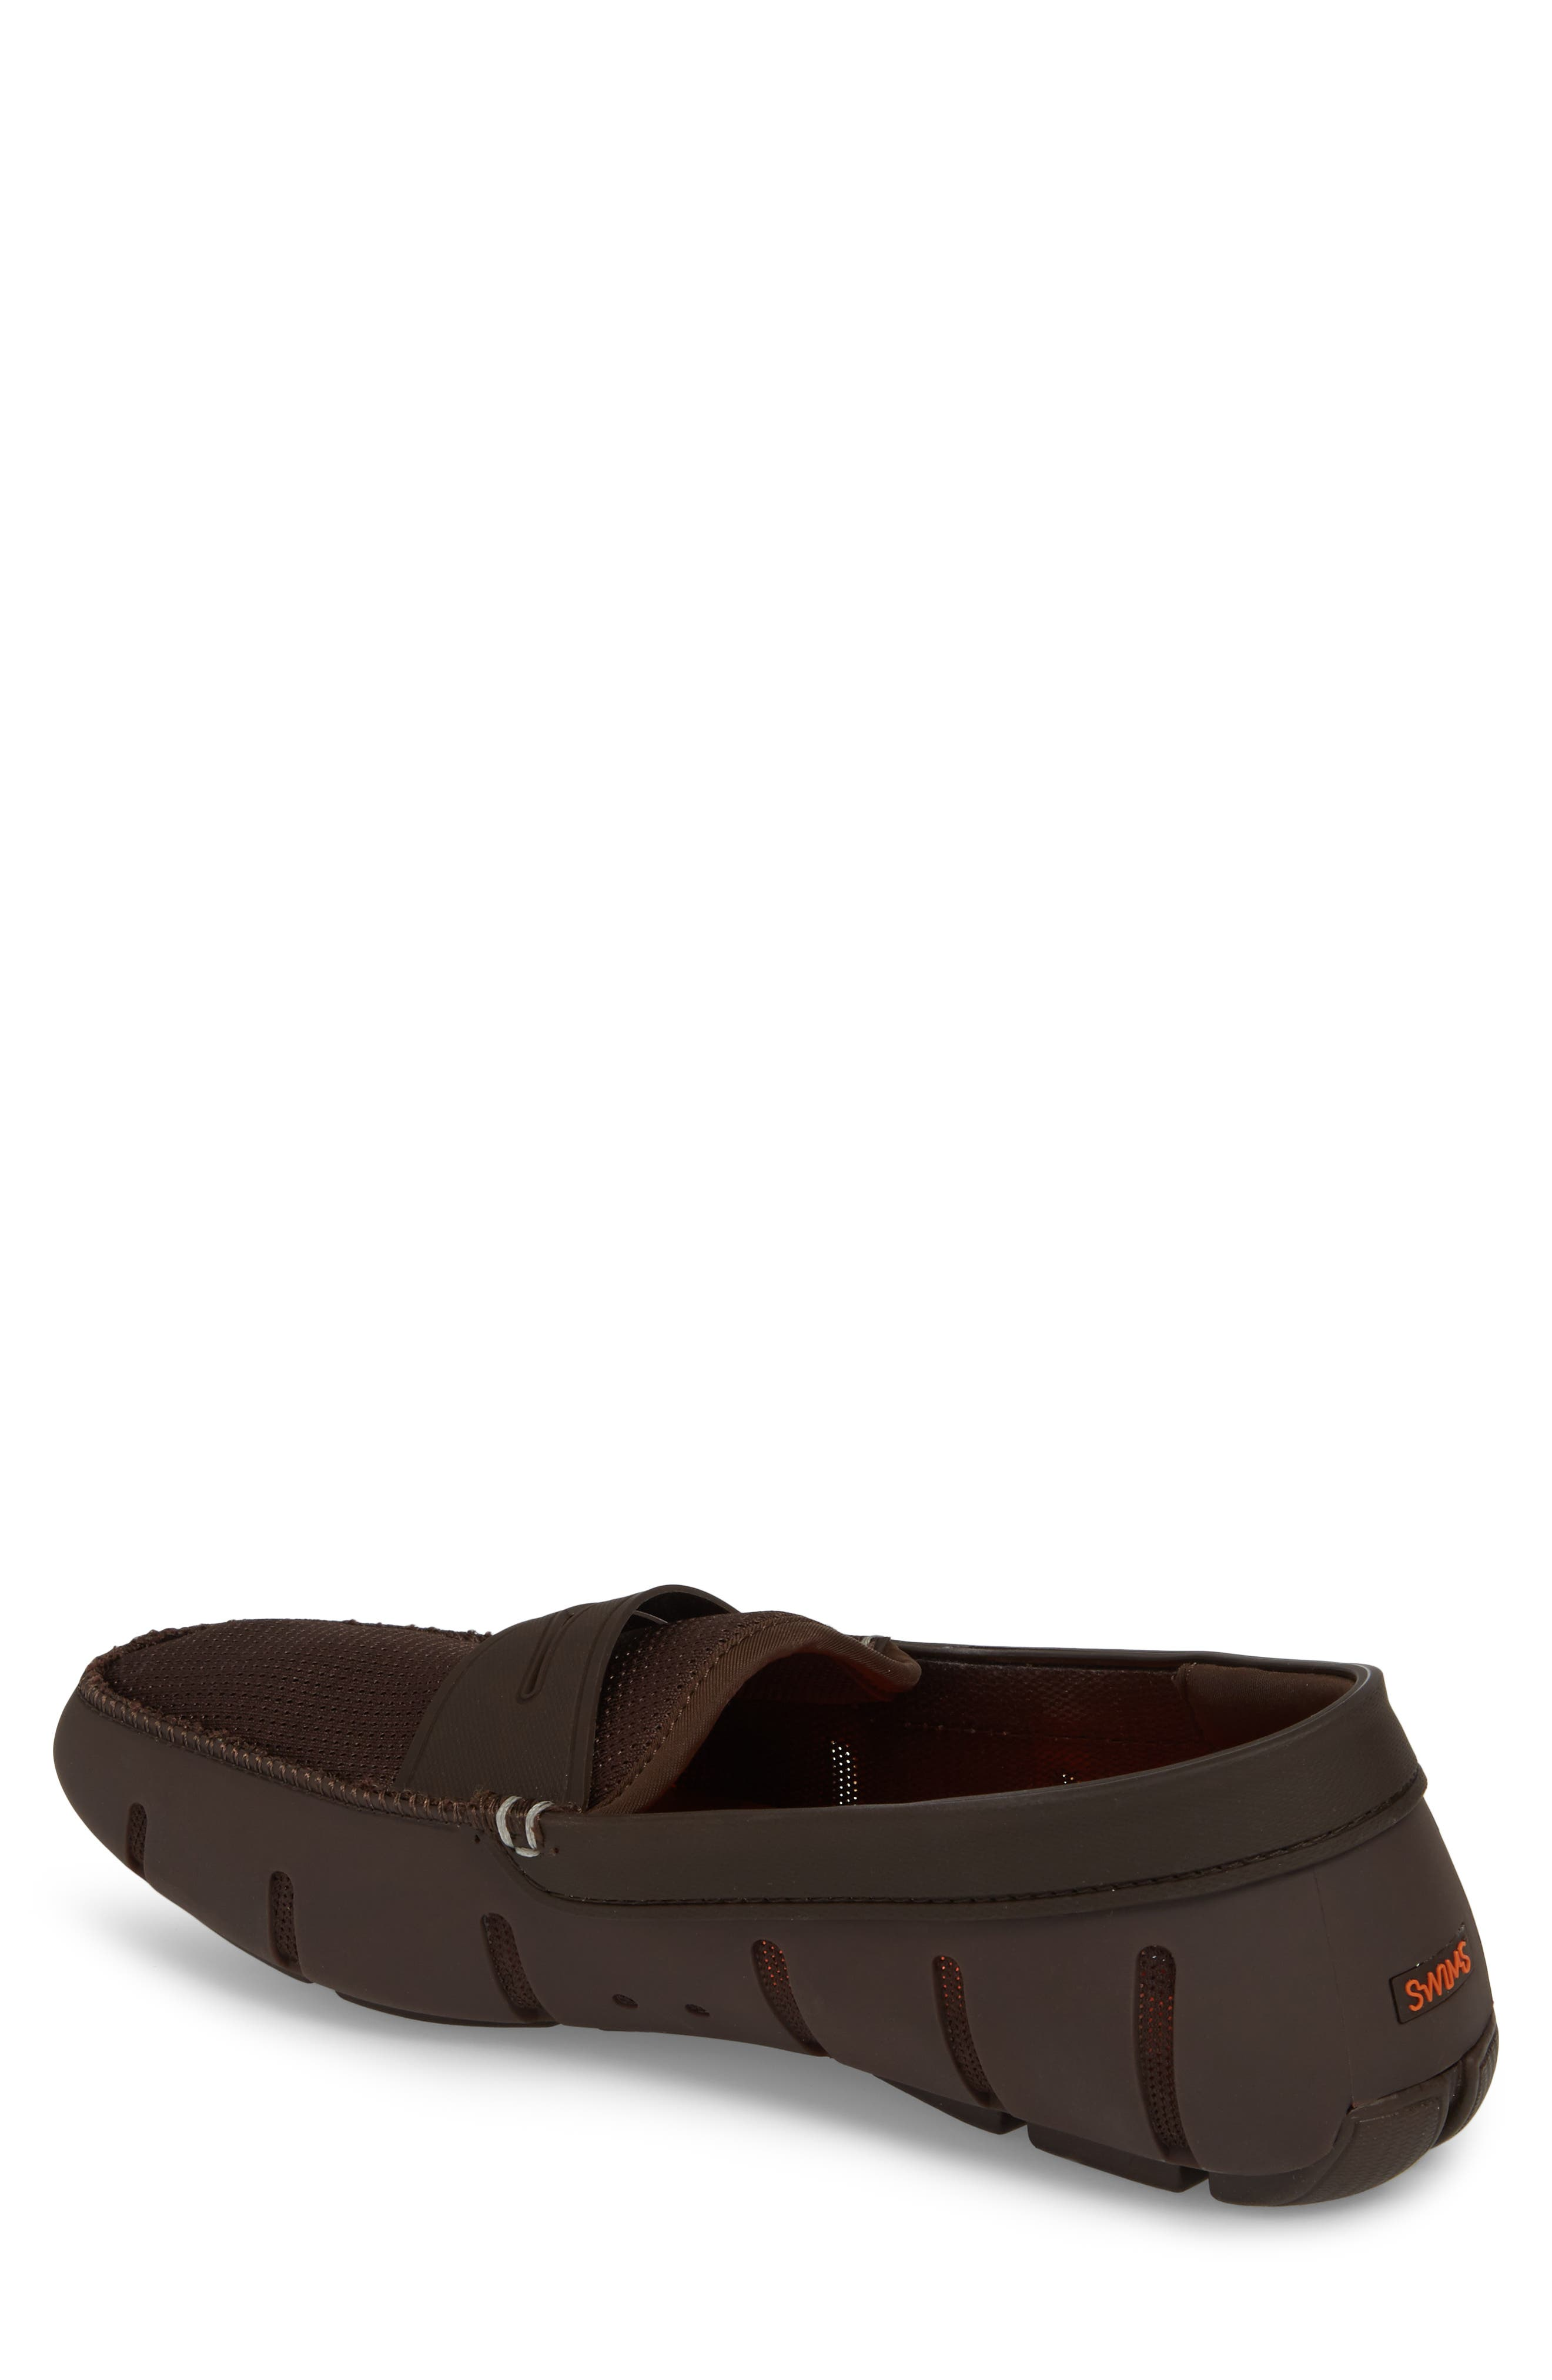 Washable Penny Loafer,                             Alternate thumbnail 2, color,                             242